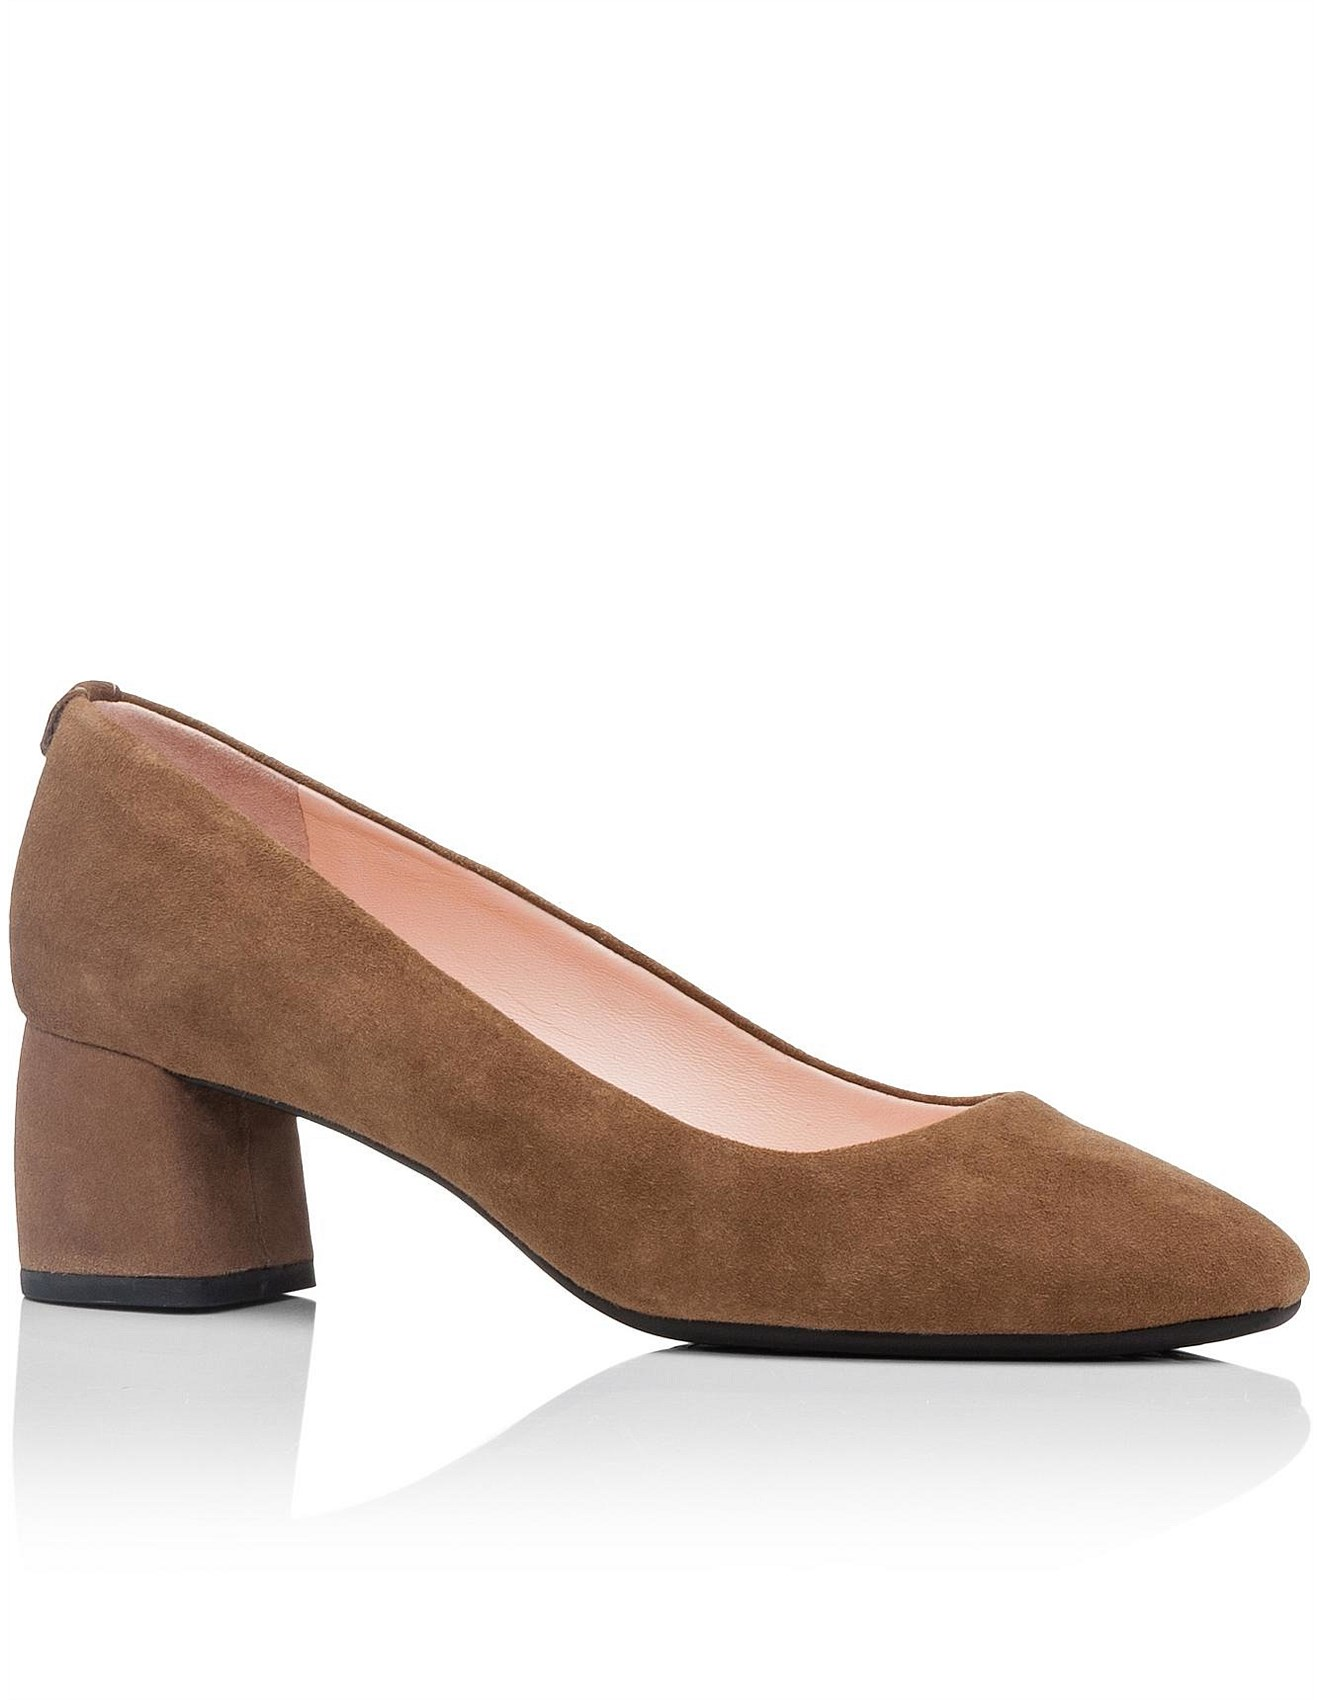 ccefa2aee27c Women s Shoes